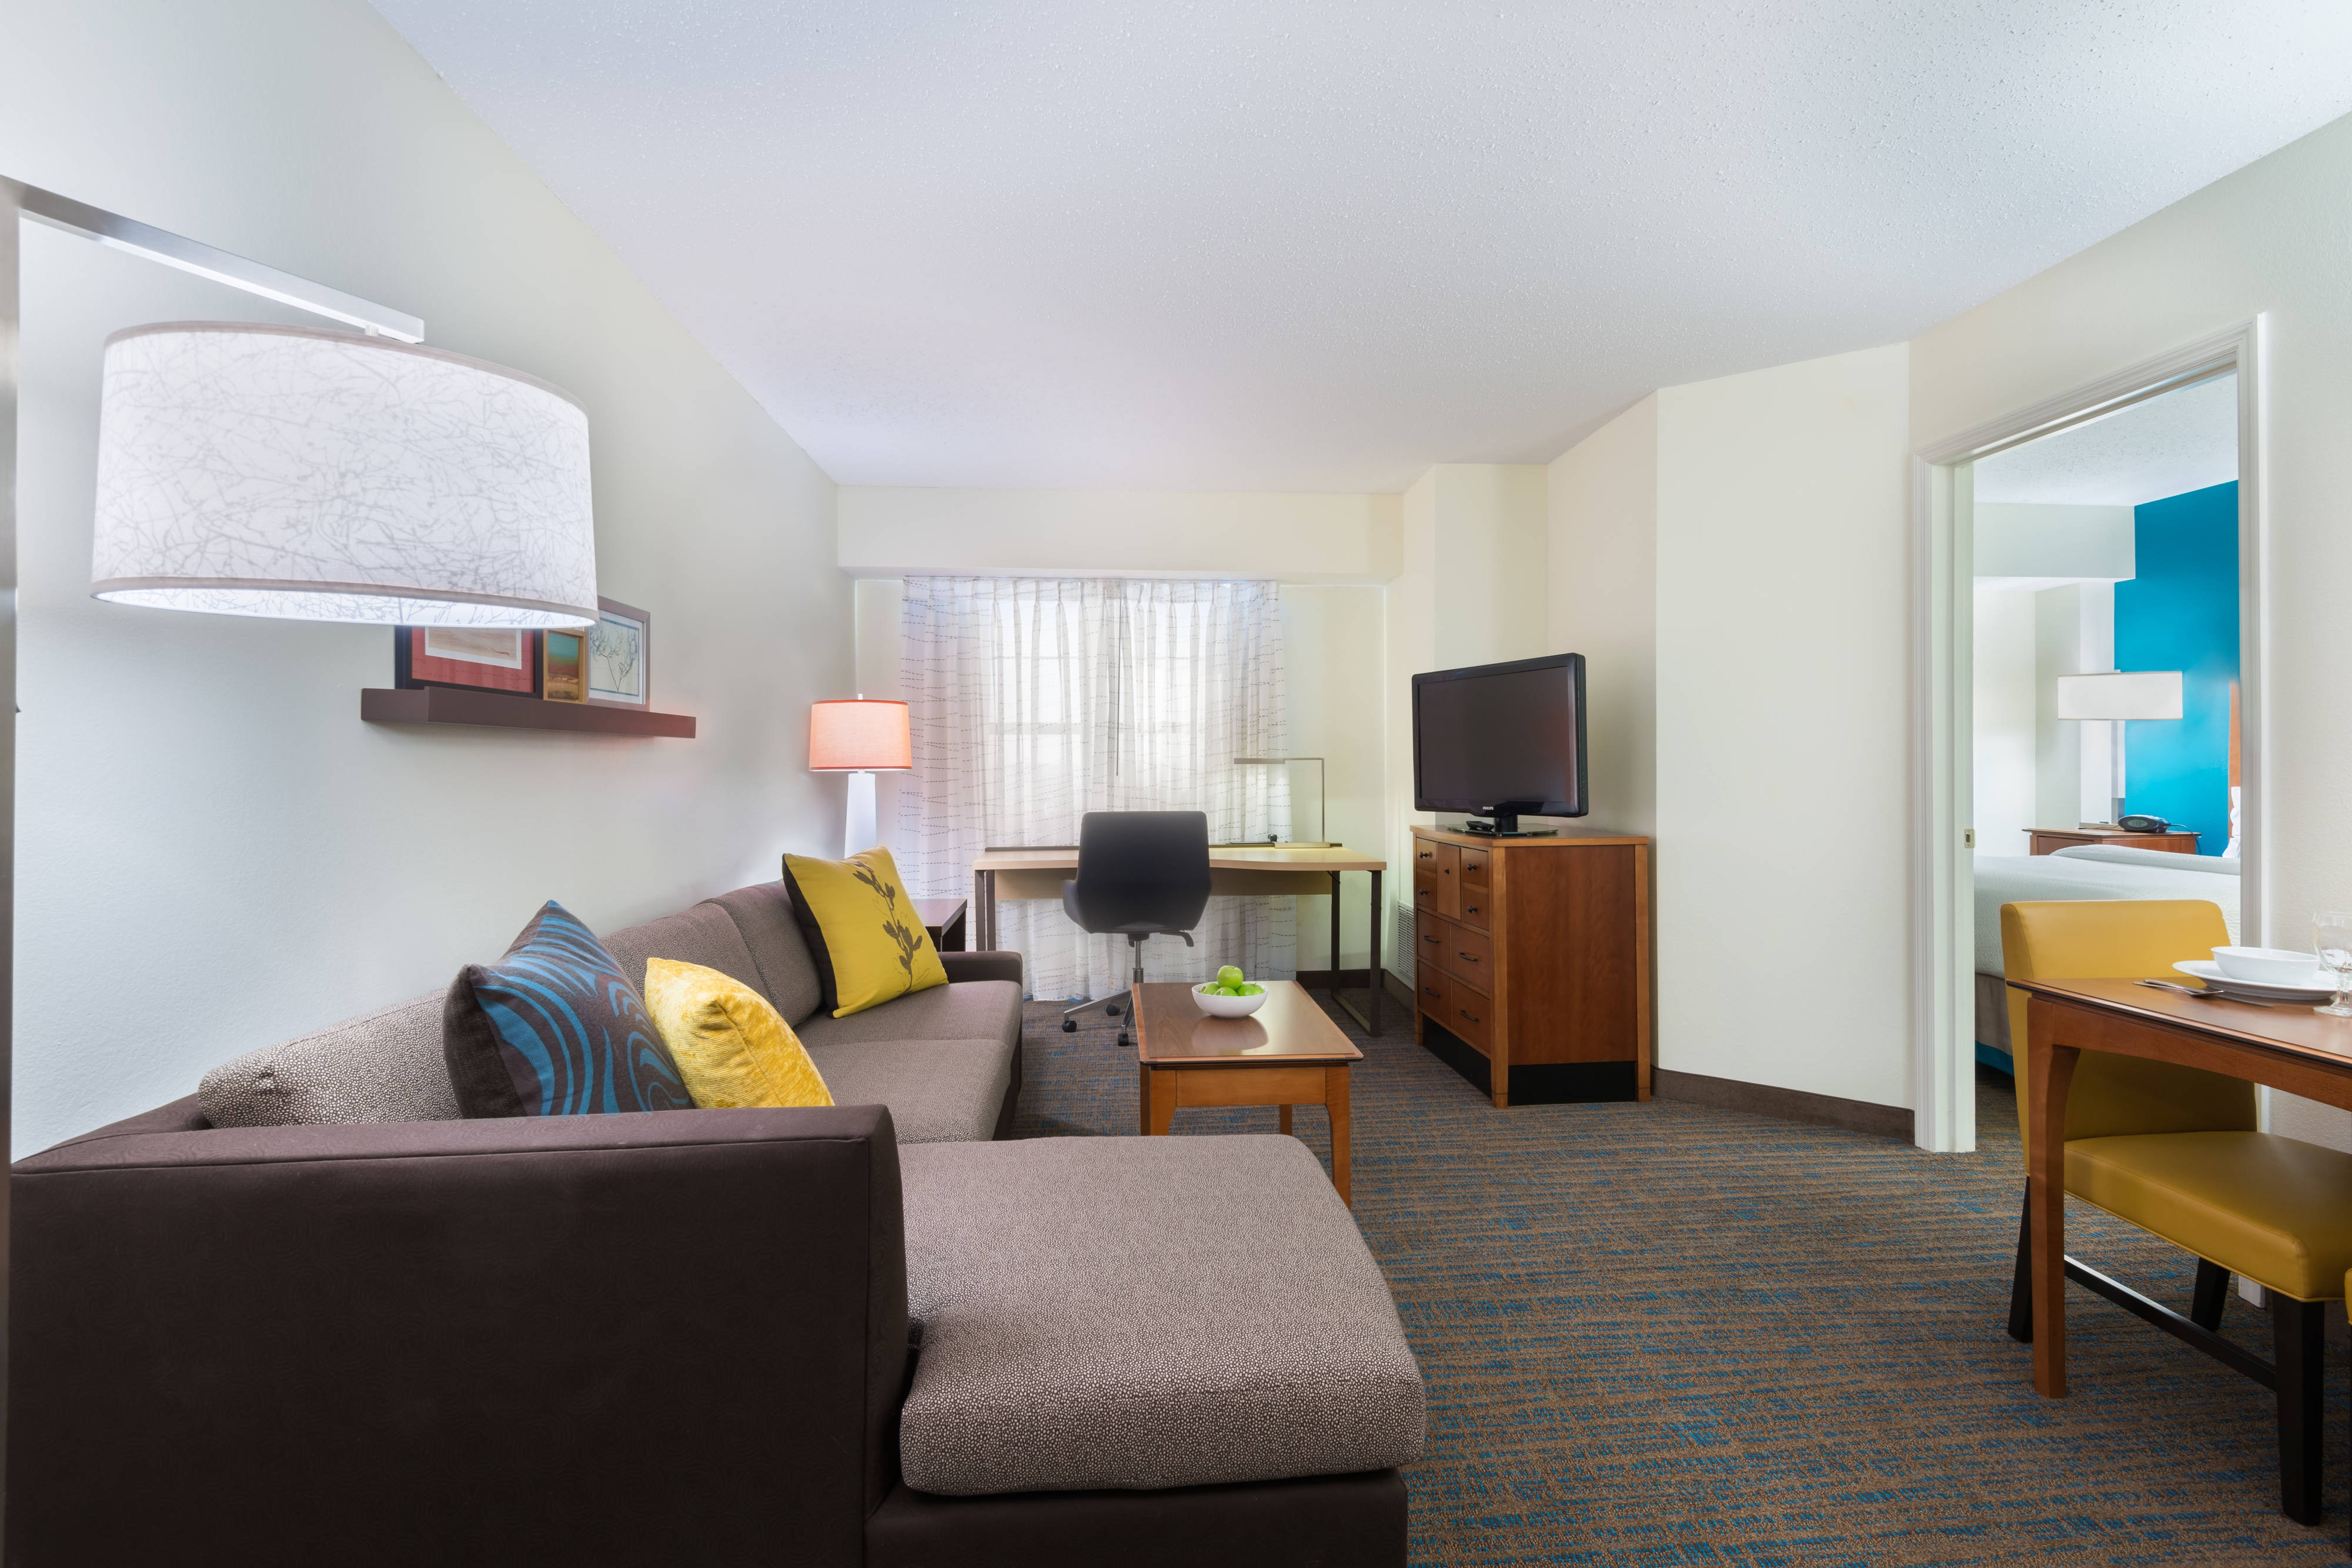 harts towneplace hor new in park orleans hershey hotel harrisburg hotels near suites bedroom suite clsc rooms